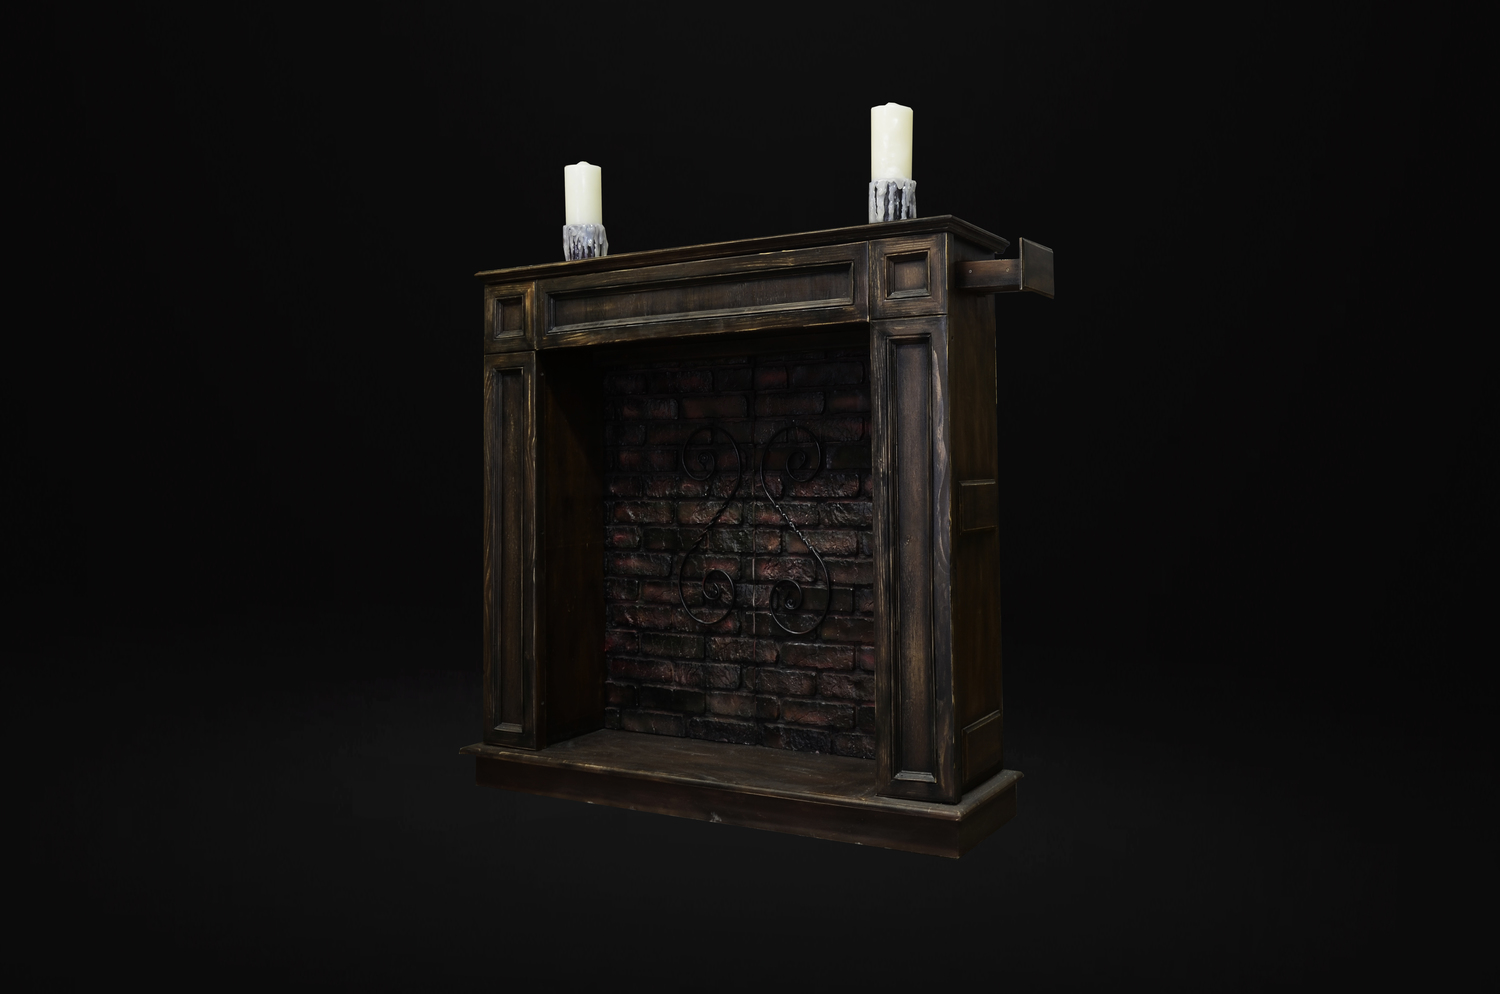 "<p><span style=""font-weight: bold;"">Secret passage for quest room fireplace</span><br></p>"